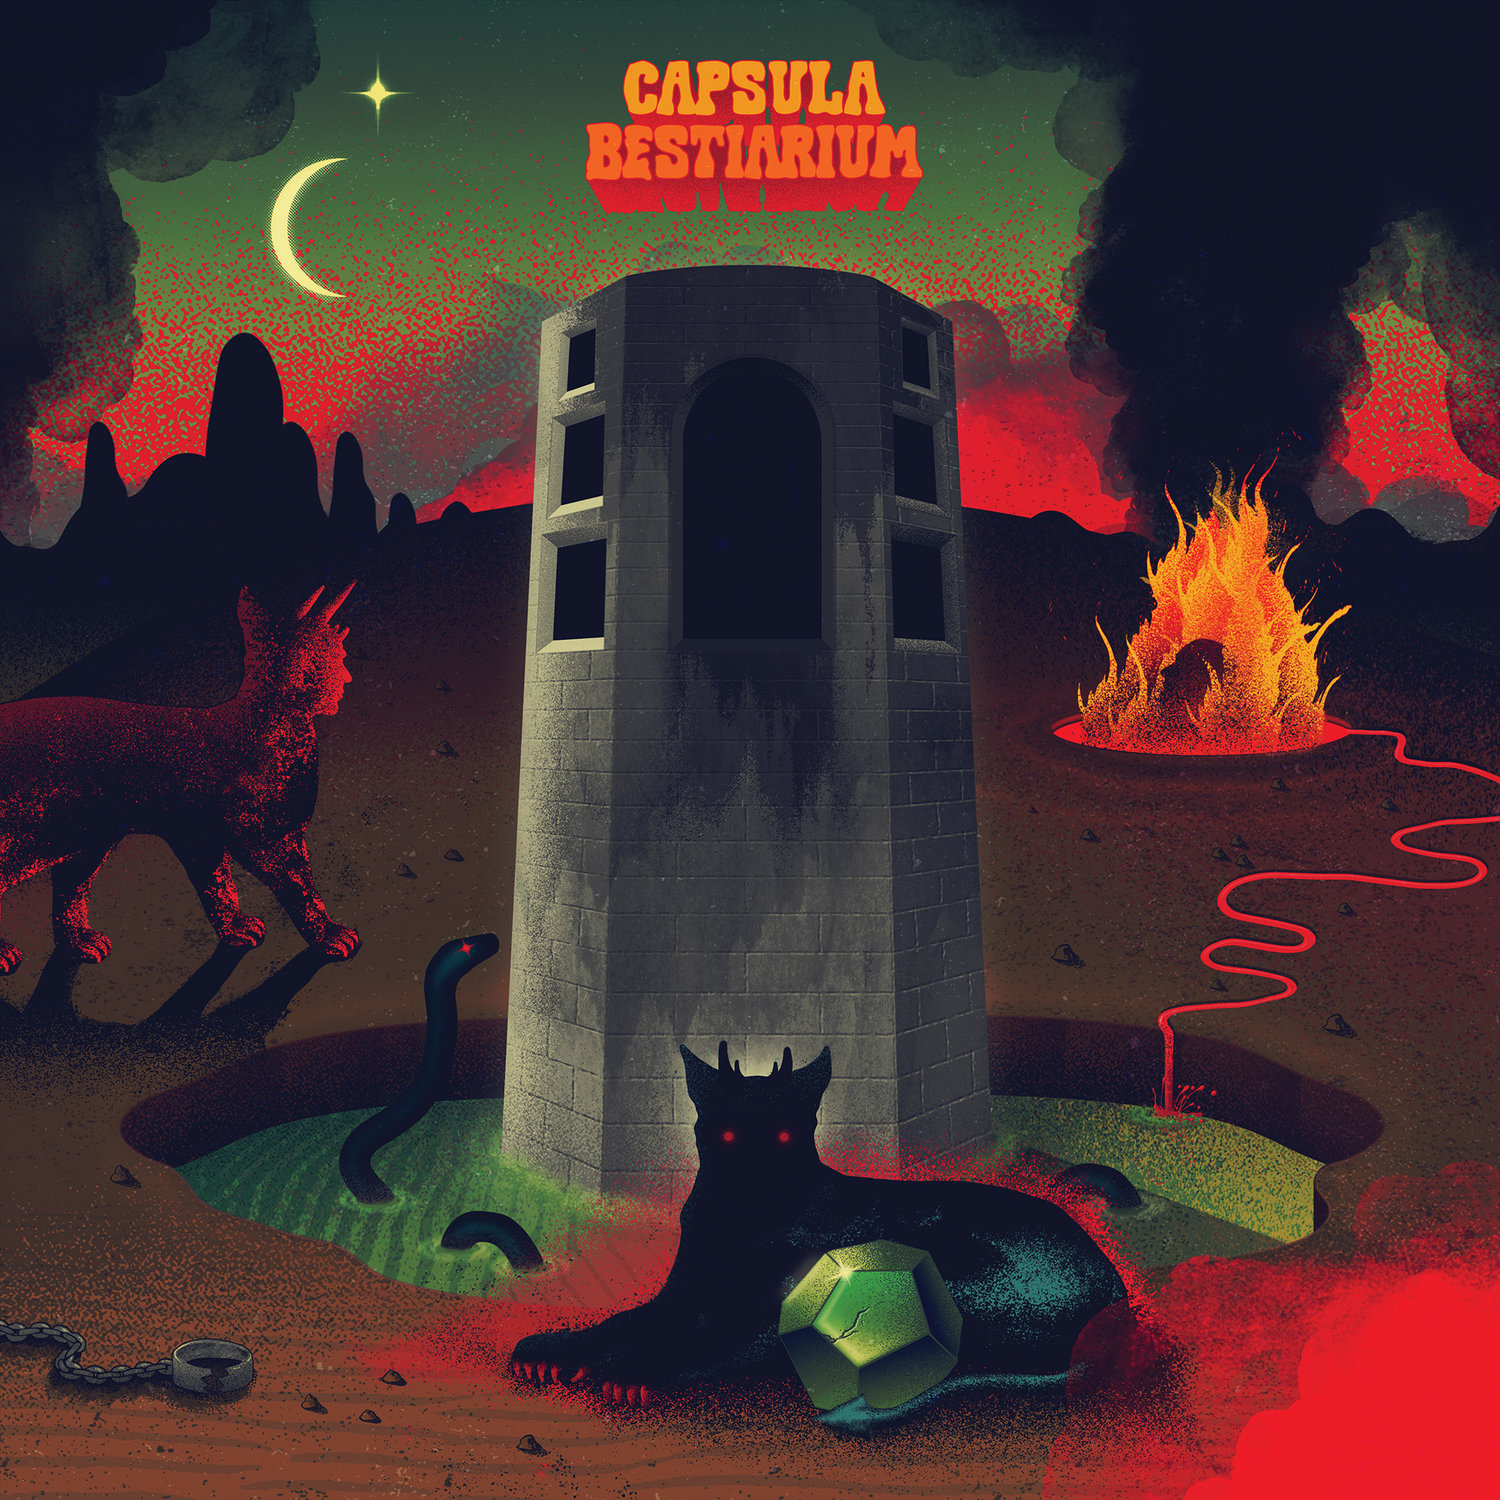 Capsula - Bestiarium - LP - Sept 2018